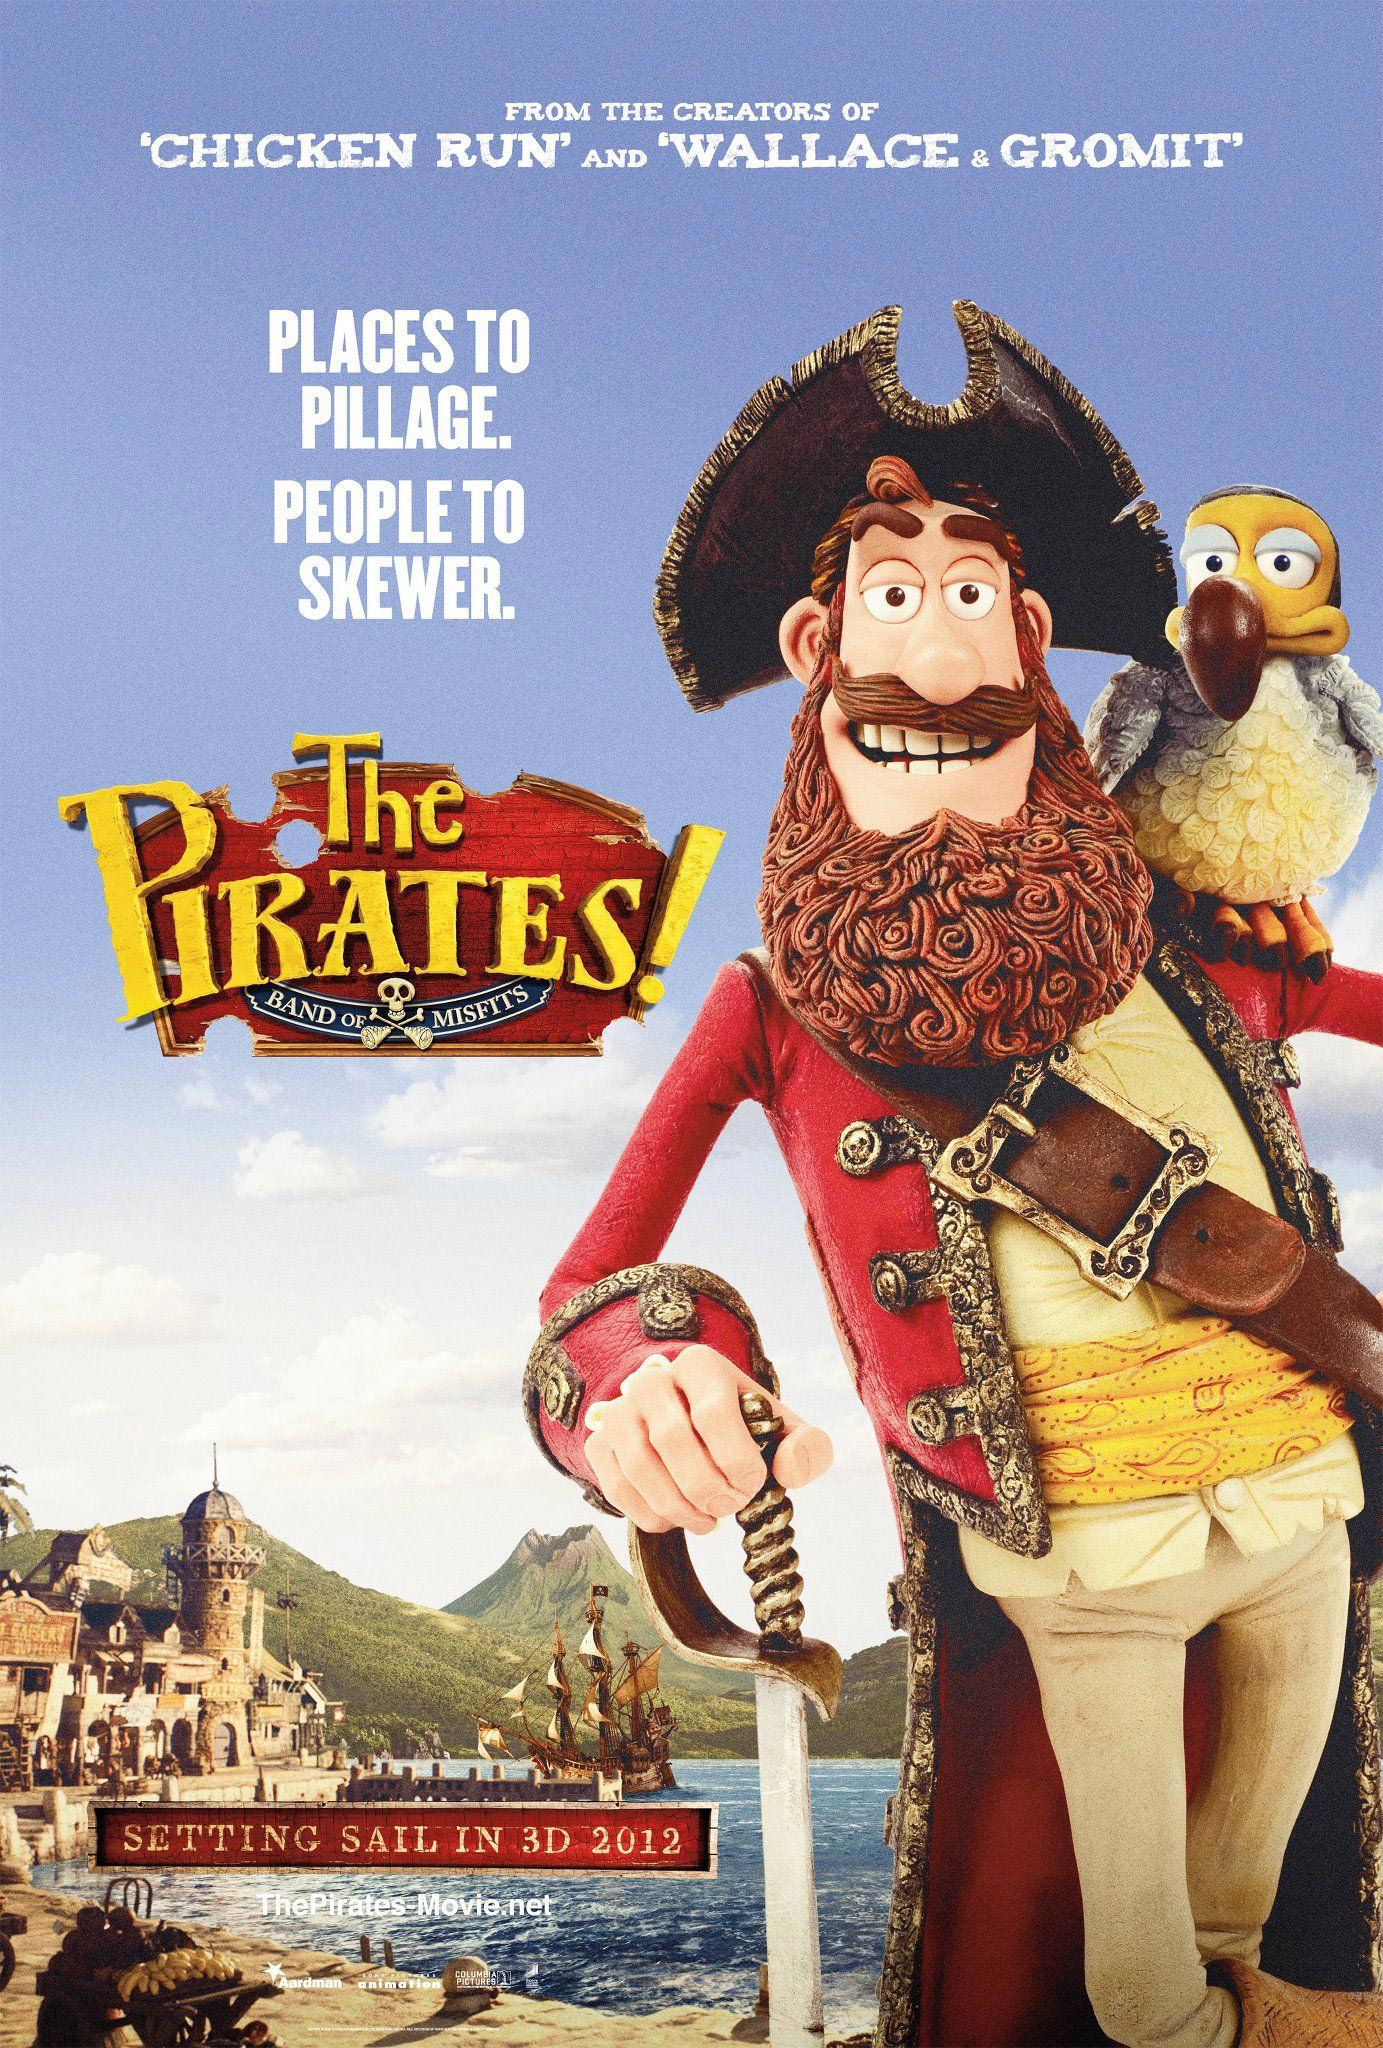 The Pirate Filme Two New The Pirates Band Of Misfits Trailers Filmofilia